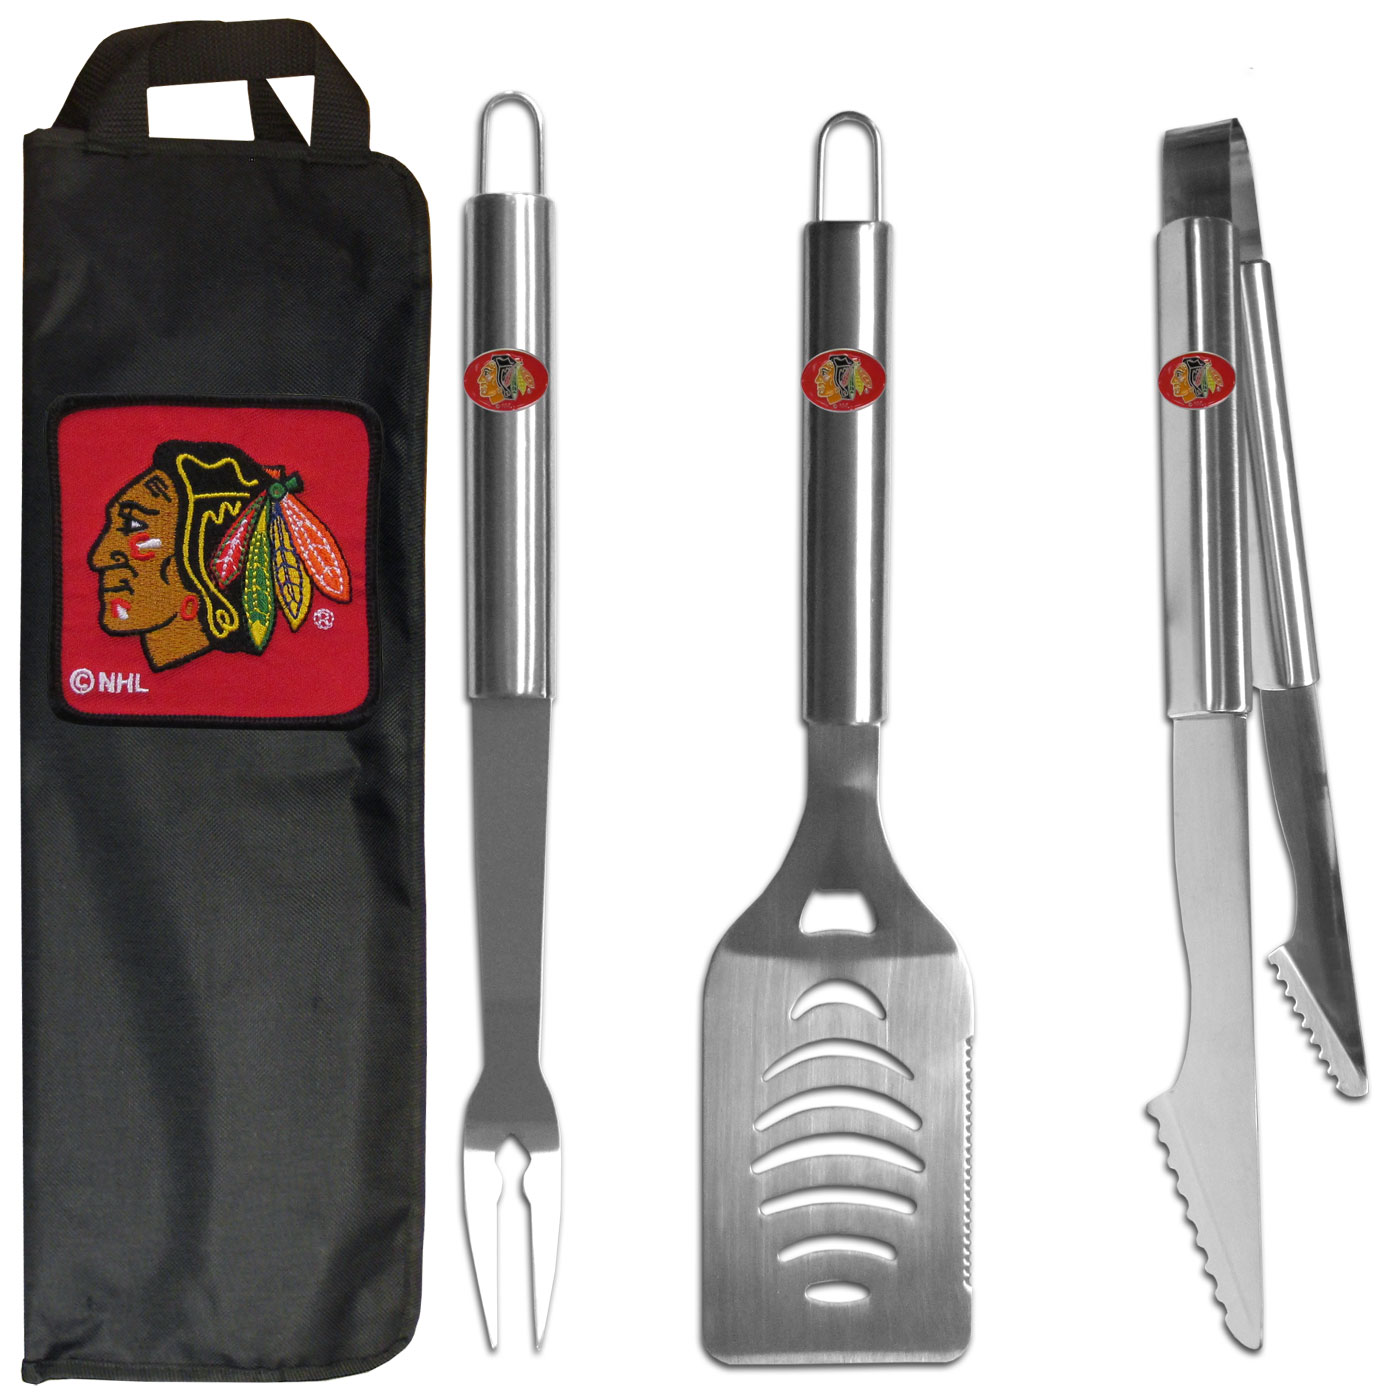 Chicago Blackhawks® 3 pc Stainless Steel BBQ Set with Bag - Our Chicago Blackhawks® stainless steel 3 pc BBQ tool set includes a large spatula with built in bottle opener, heavy duty tongs, and large fork. All the tools feature a team logo on the handle. The set comes with a durable canvas bag that has a chrome accented team logo.